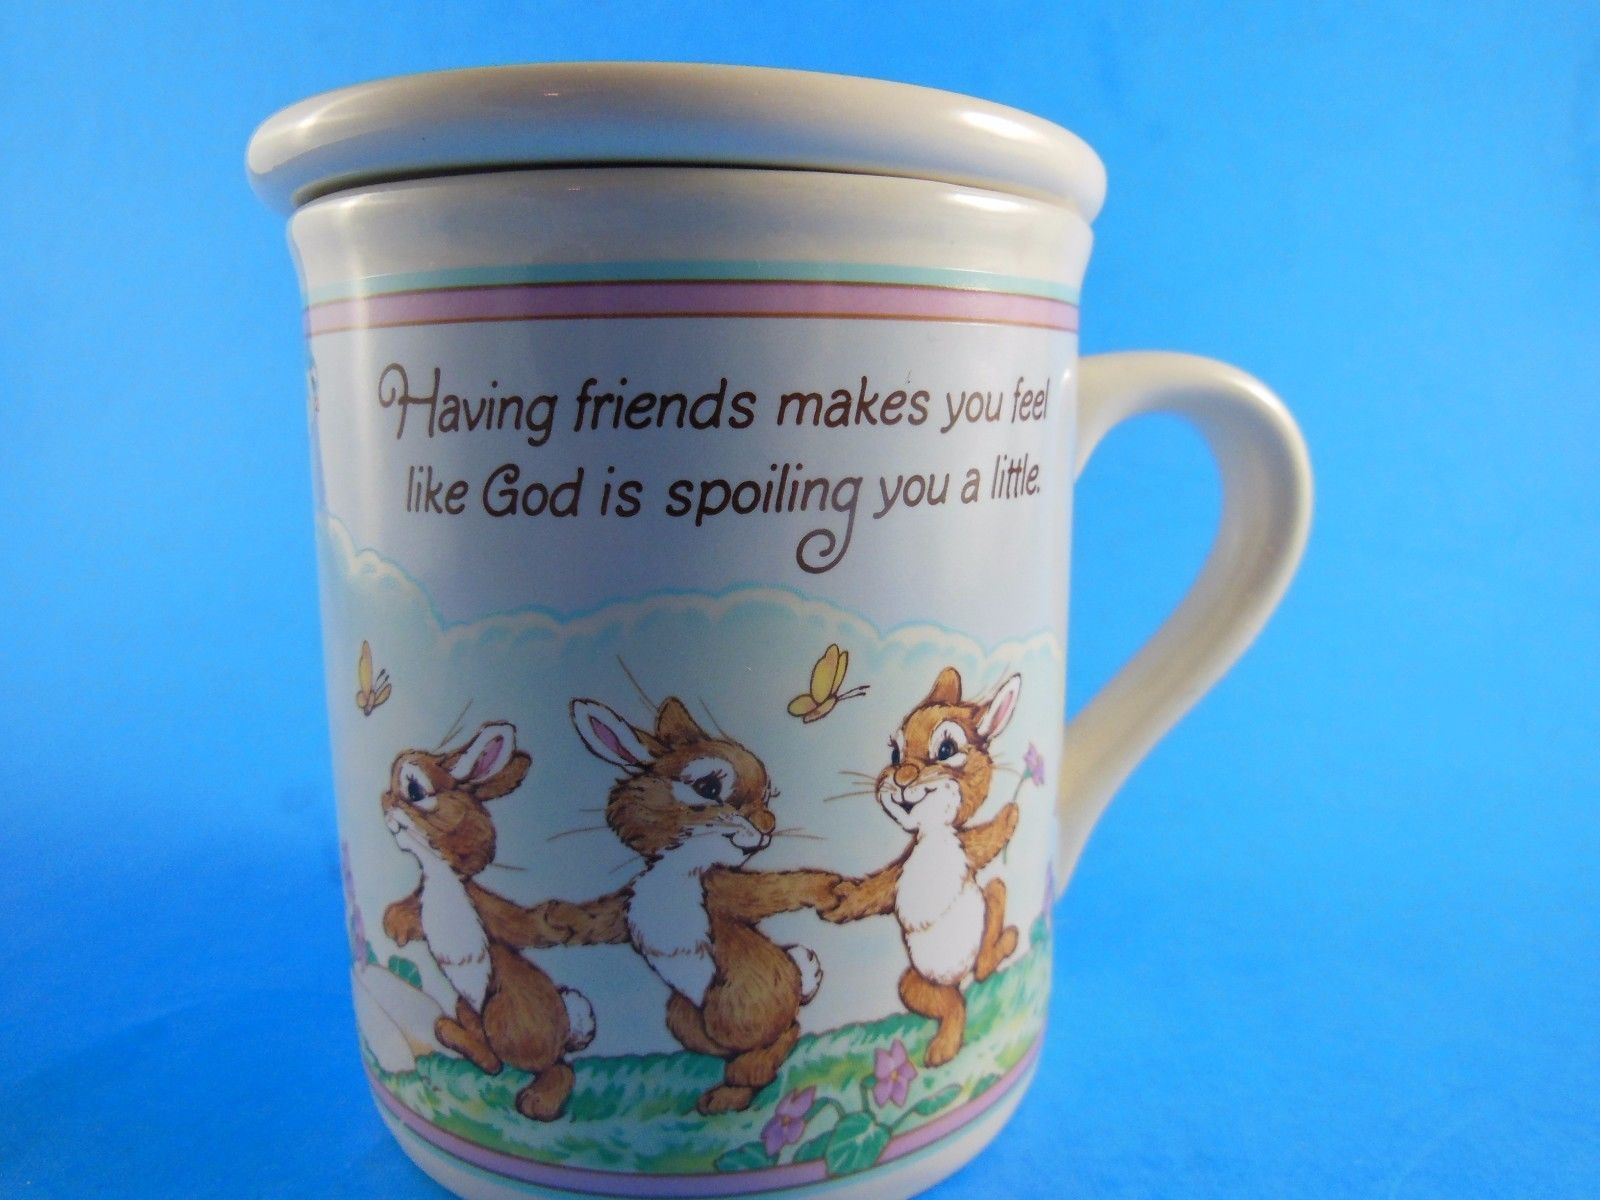 Primary image for Vintage Hallmark Mug Mates Coffee Mug Friends Like God Is spoiling You w Bunnies